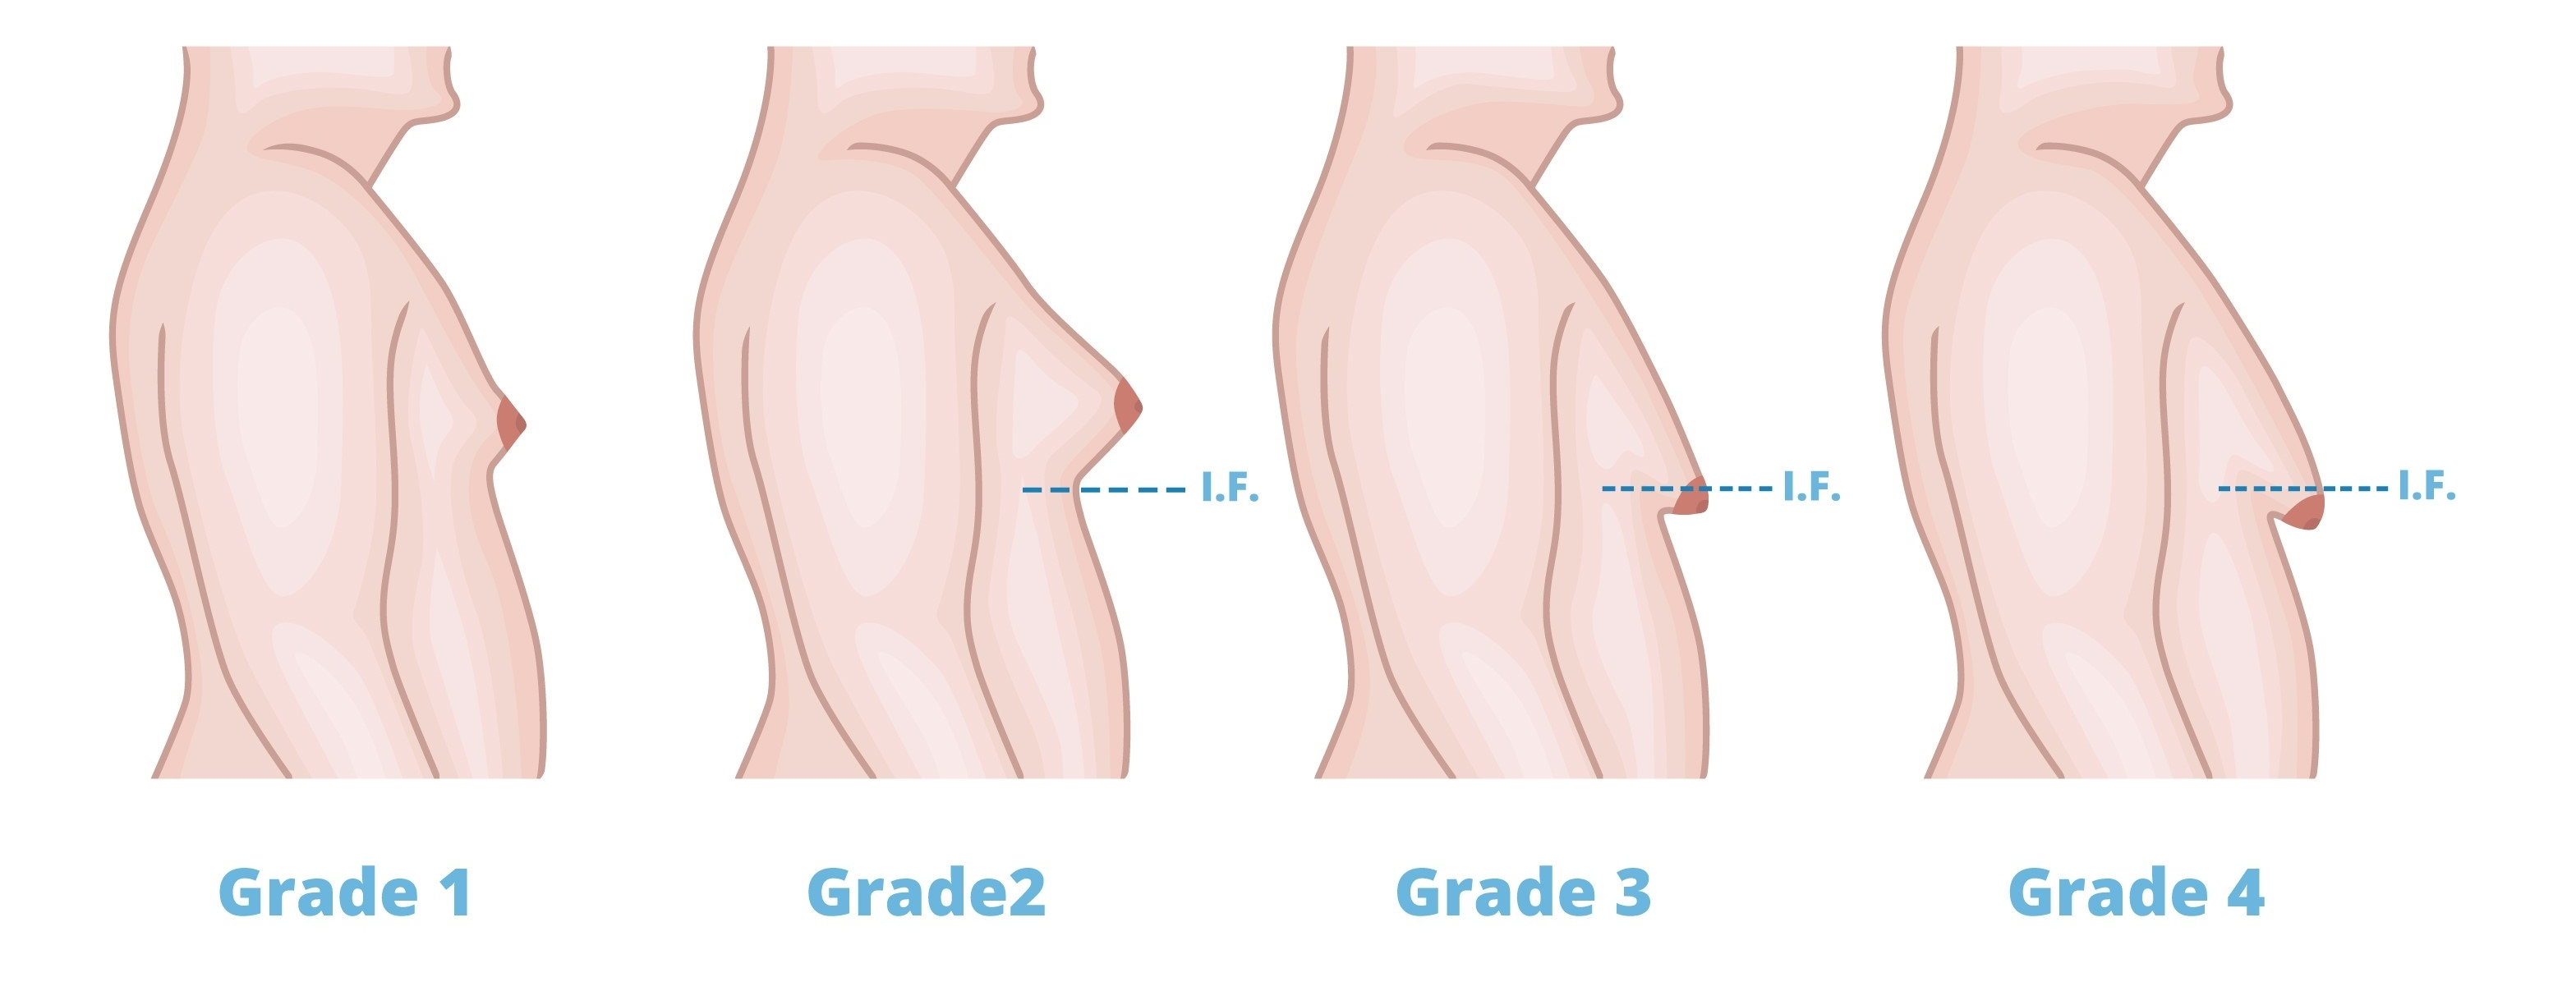 The different grades of Gynecomasta based on the following: size of breast  tissue development, severity of the condition and feminization of the breast .